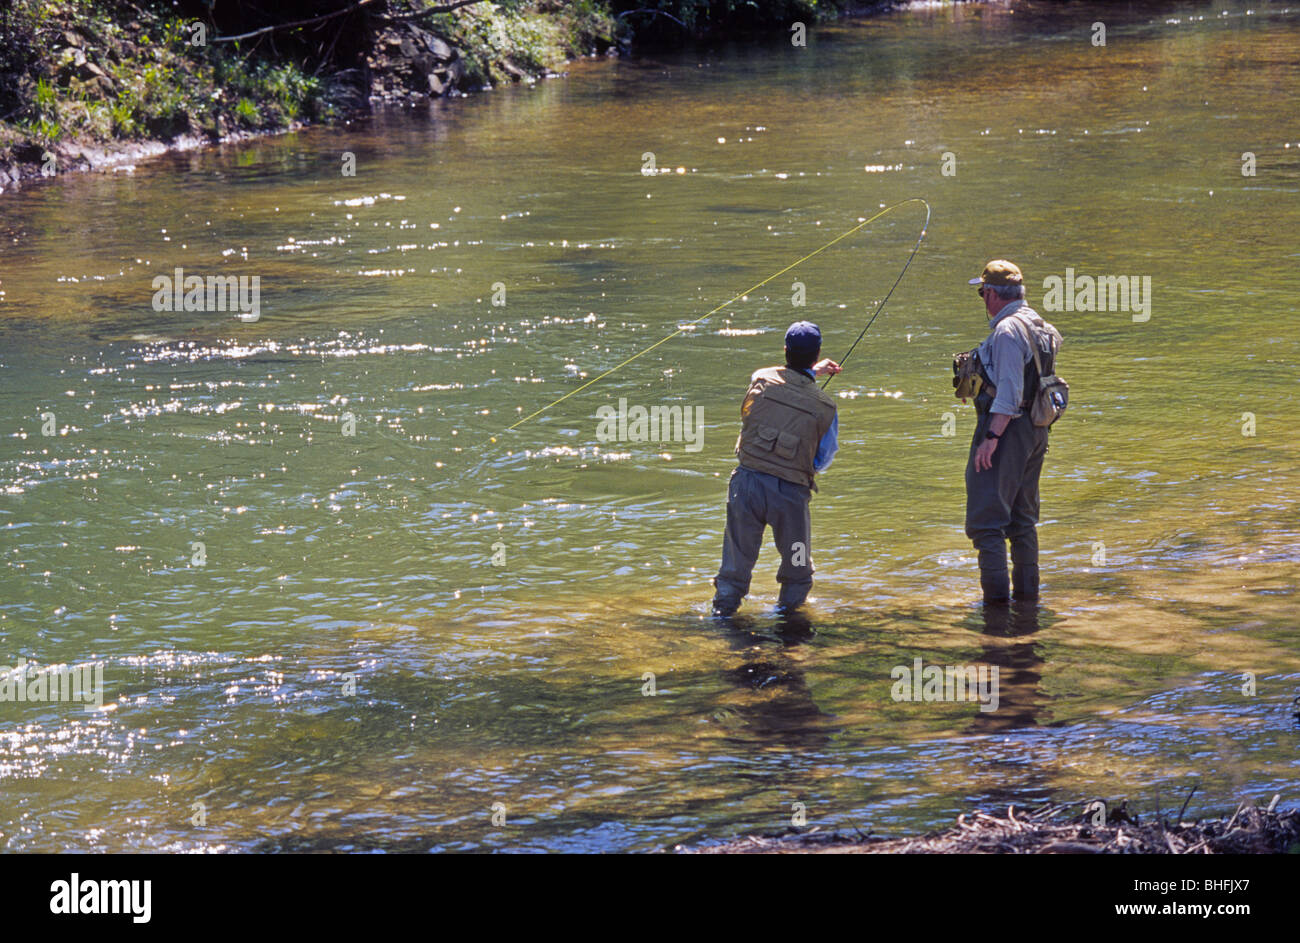 Fly fishing for rainbow trout on the chattahoochee river for Fly fishing georgia